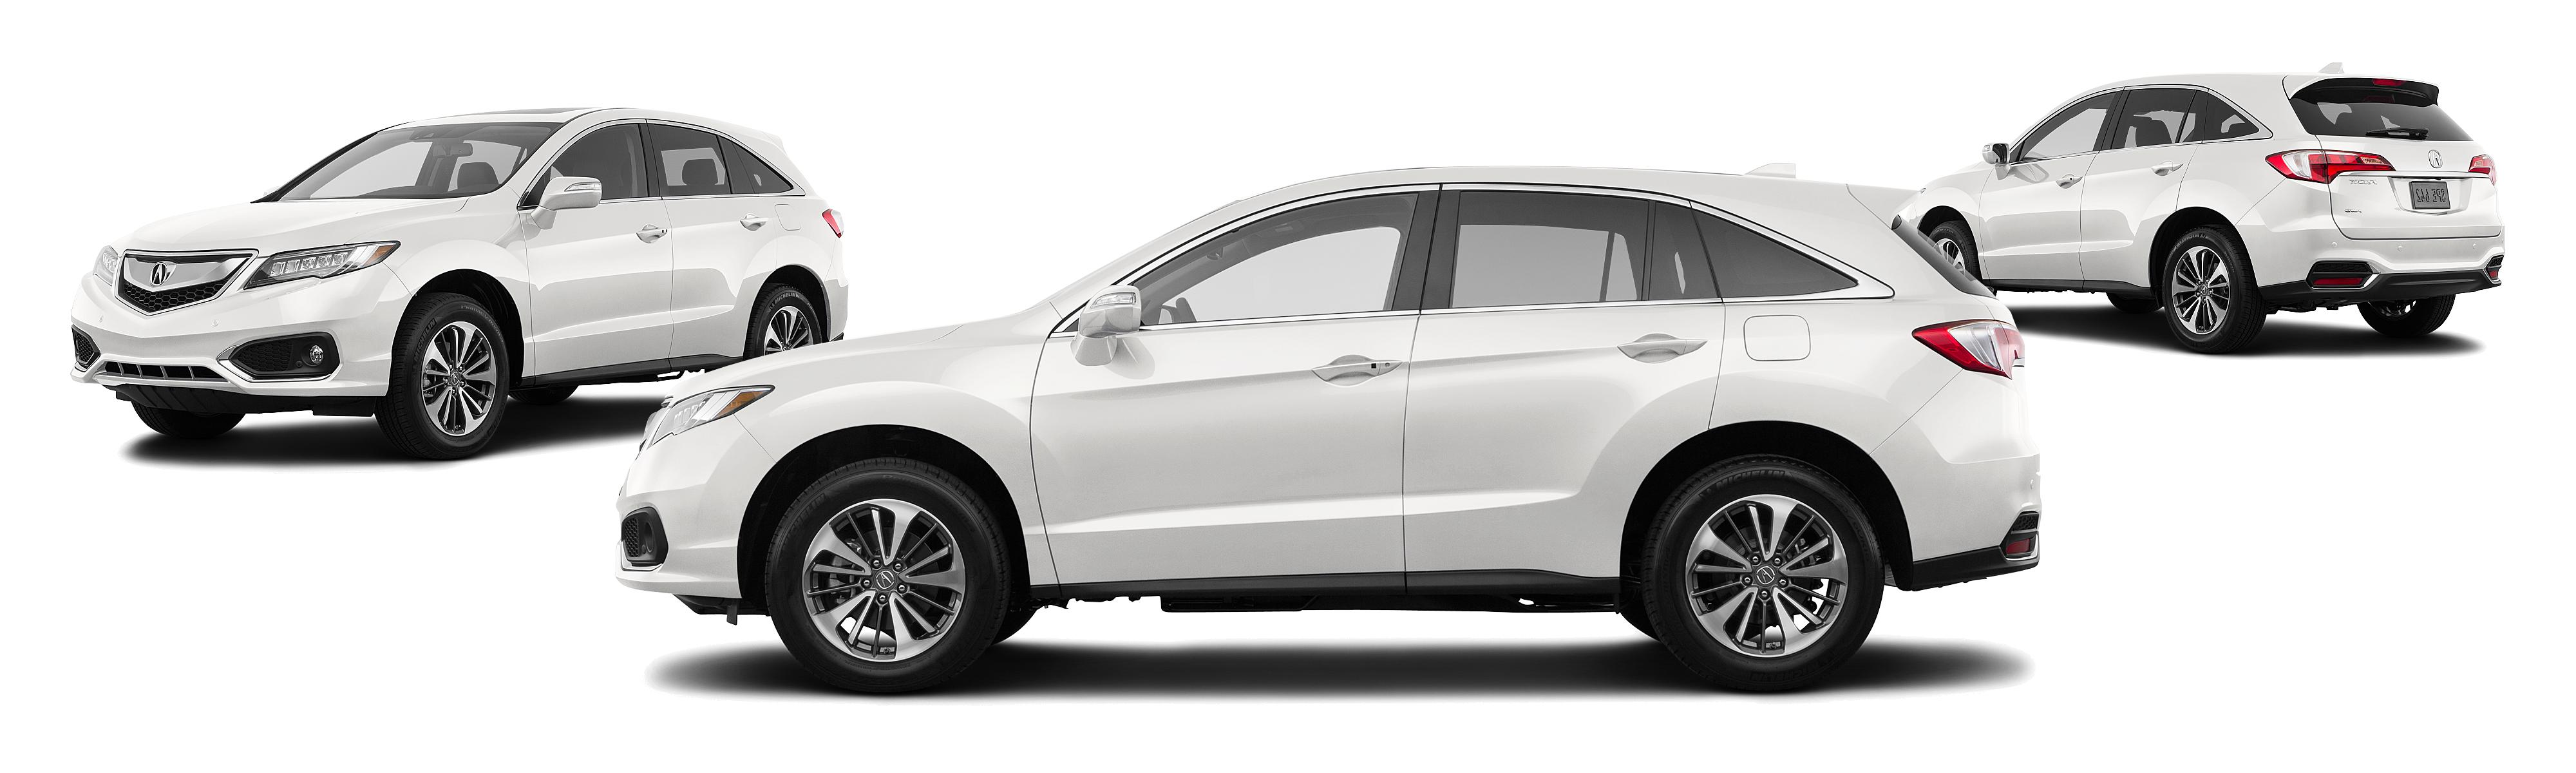 awd accessories rdx large diamond research package acura advance w white suv pearl composite groovecar